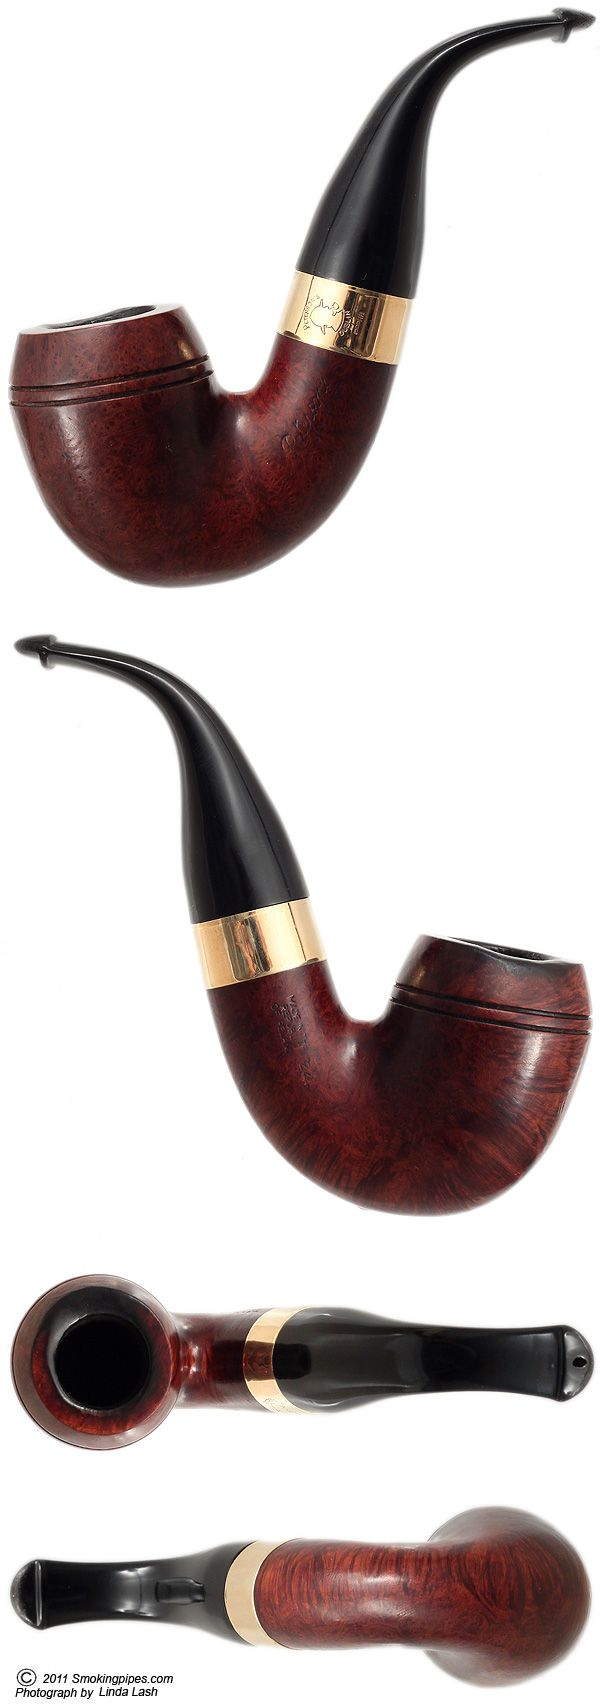 Irish Estate Peterson Sherlock Holmes Baskerville Smooth with 9K Gold Band (P-lip) Pipes at Smoking Pipes .com, Once again, I HATE the P-Lip, but this is a cool pipe.